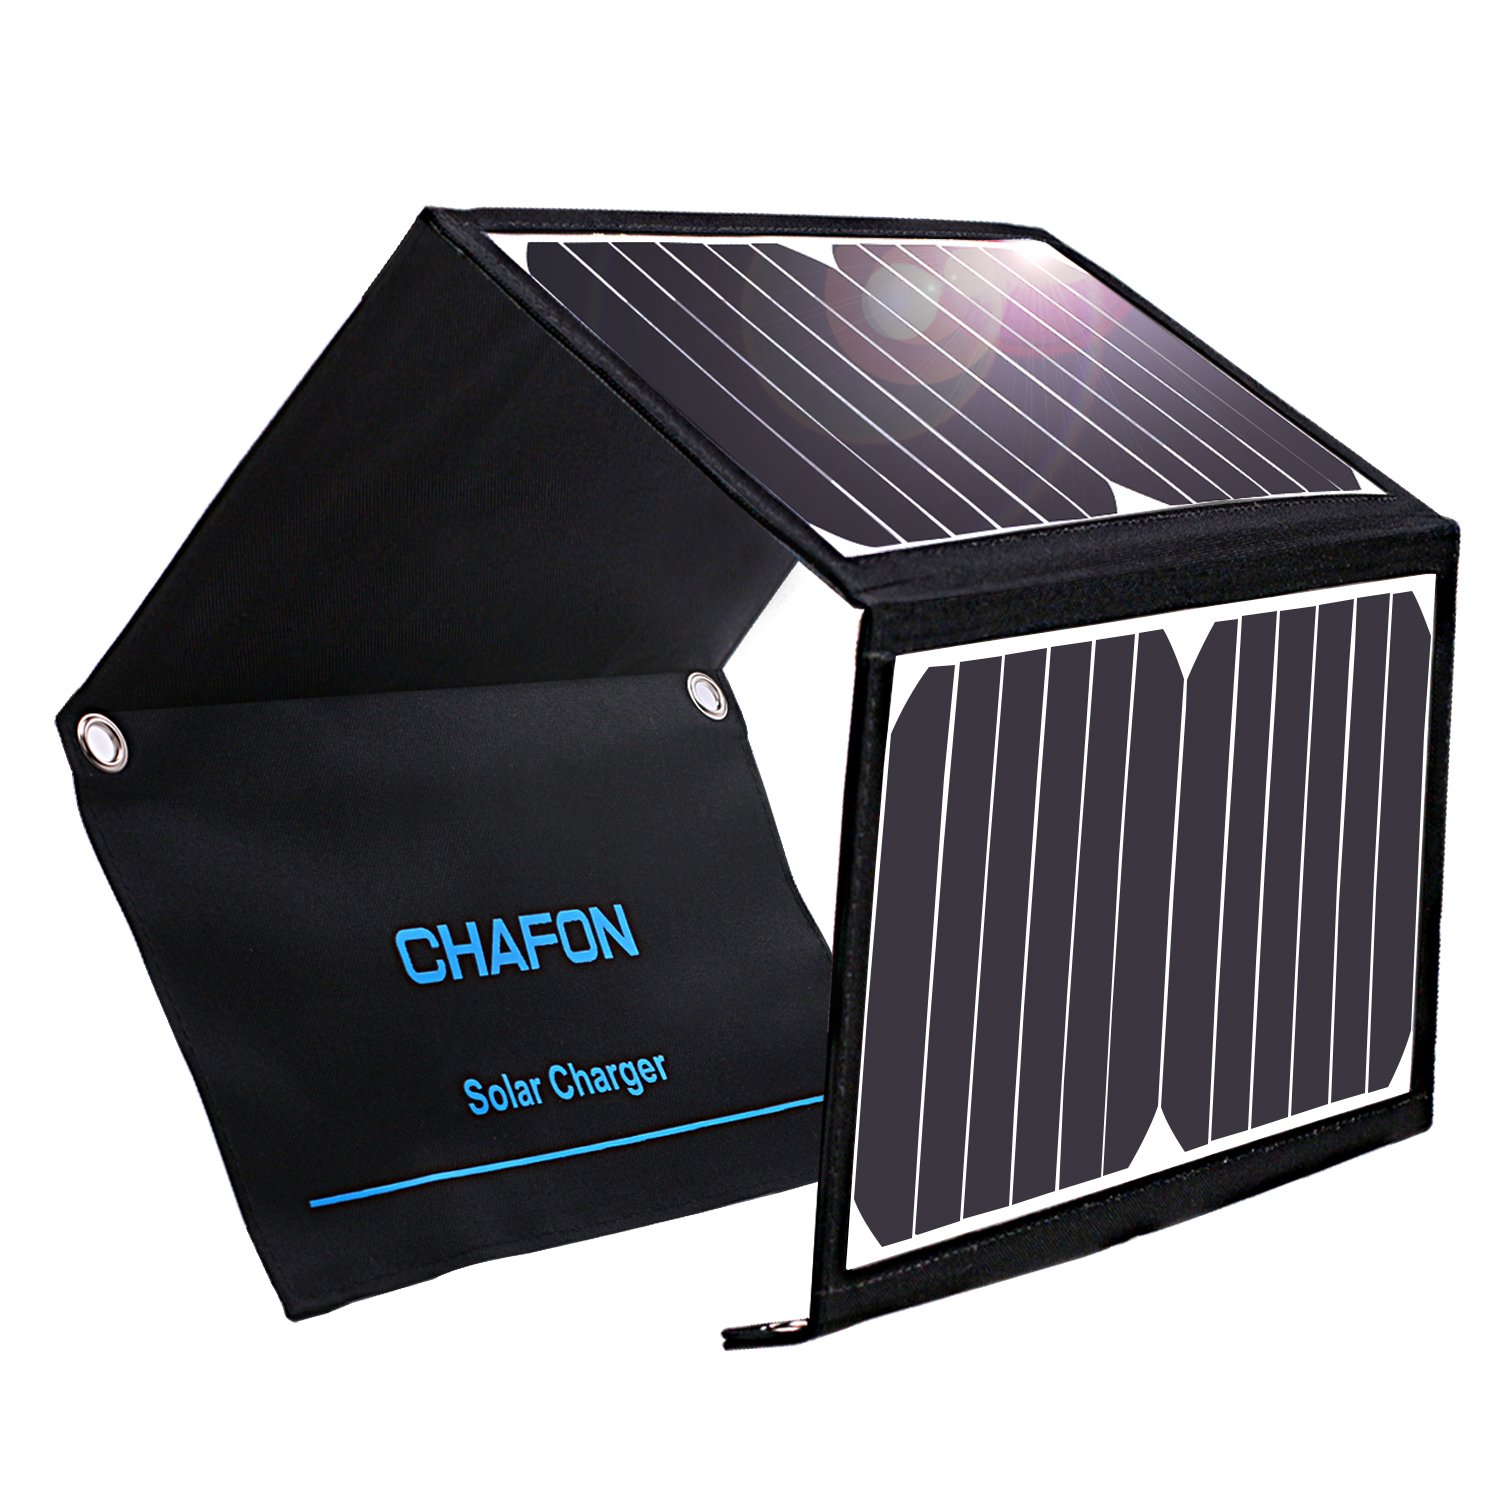 CHAFON Solar Charger 22W Foldable Solar Panel with Dual USB Ports Waterproof for iPhone, Tablets, Smartphones and Outdoor Backpacking Camping